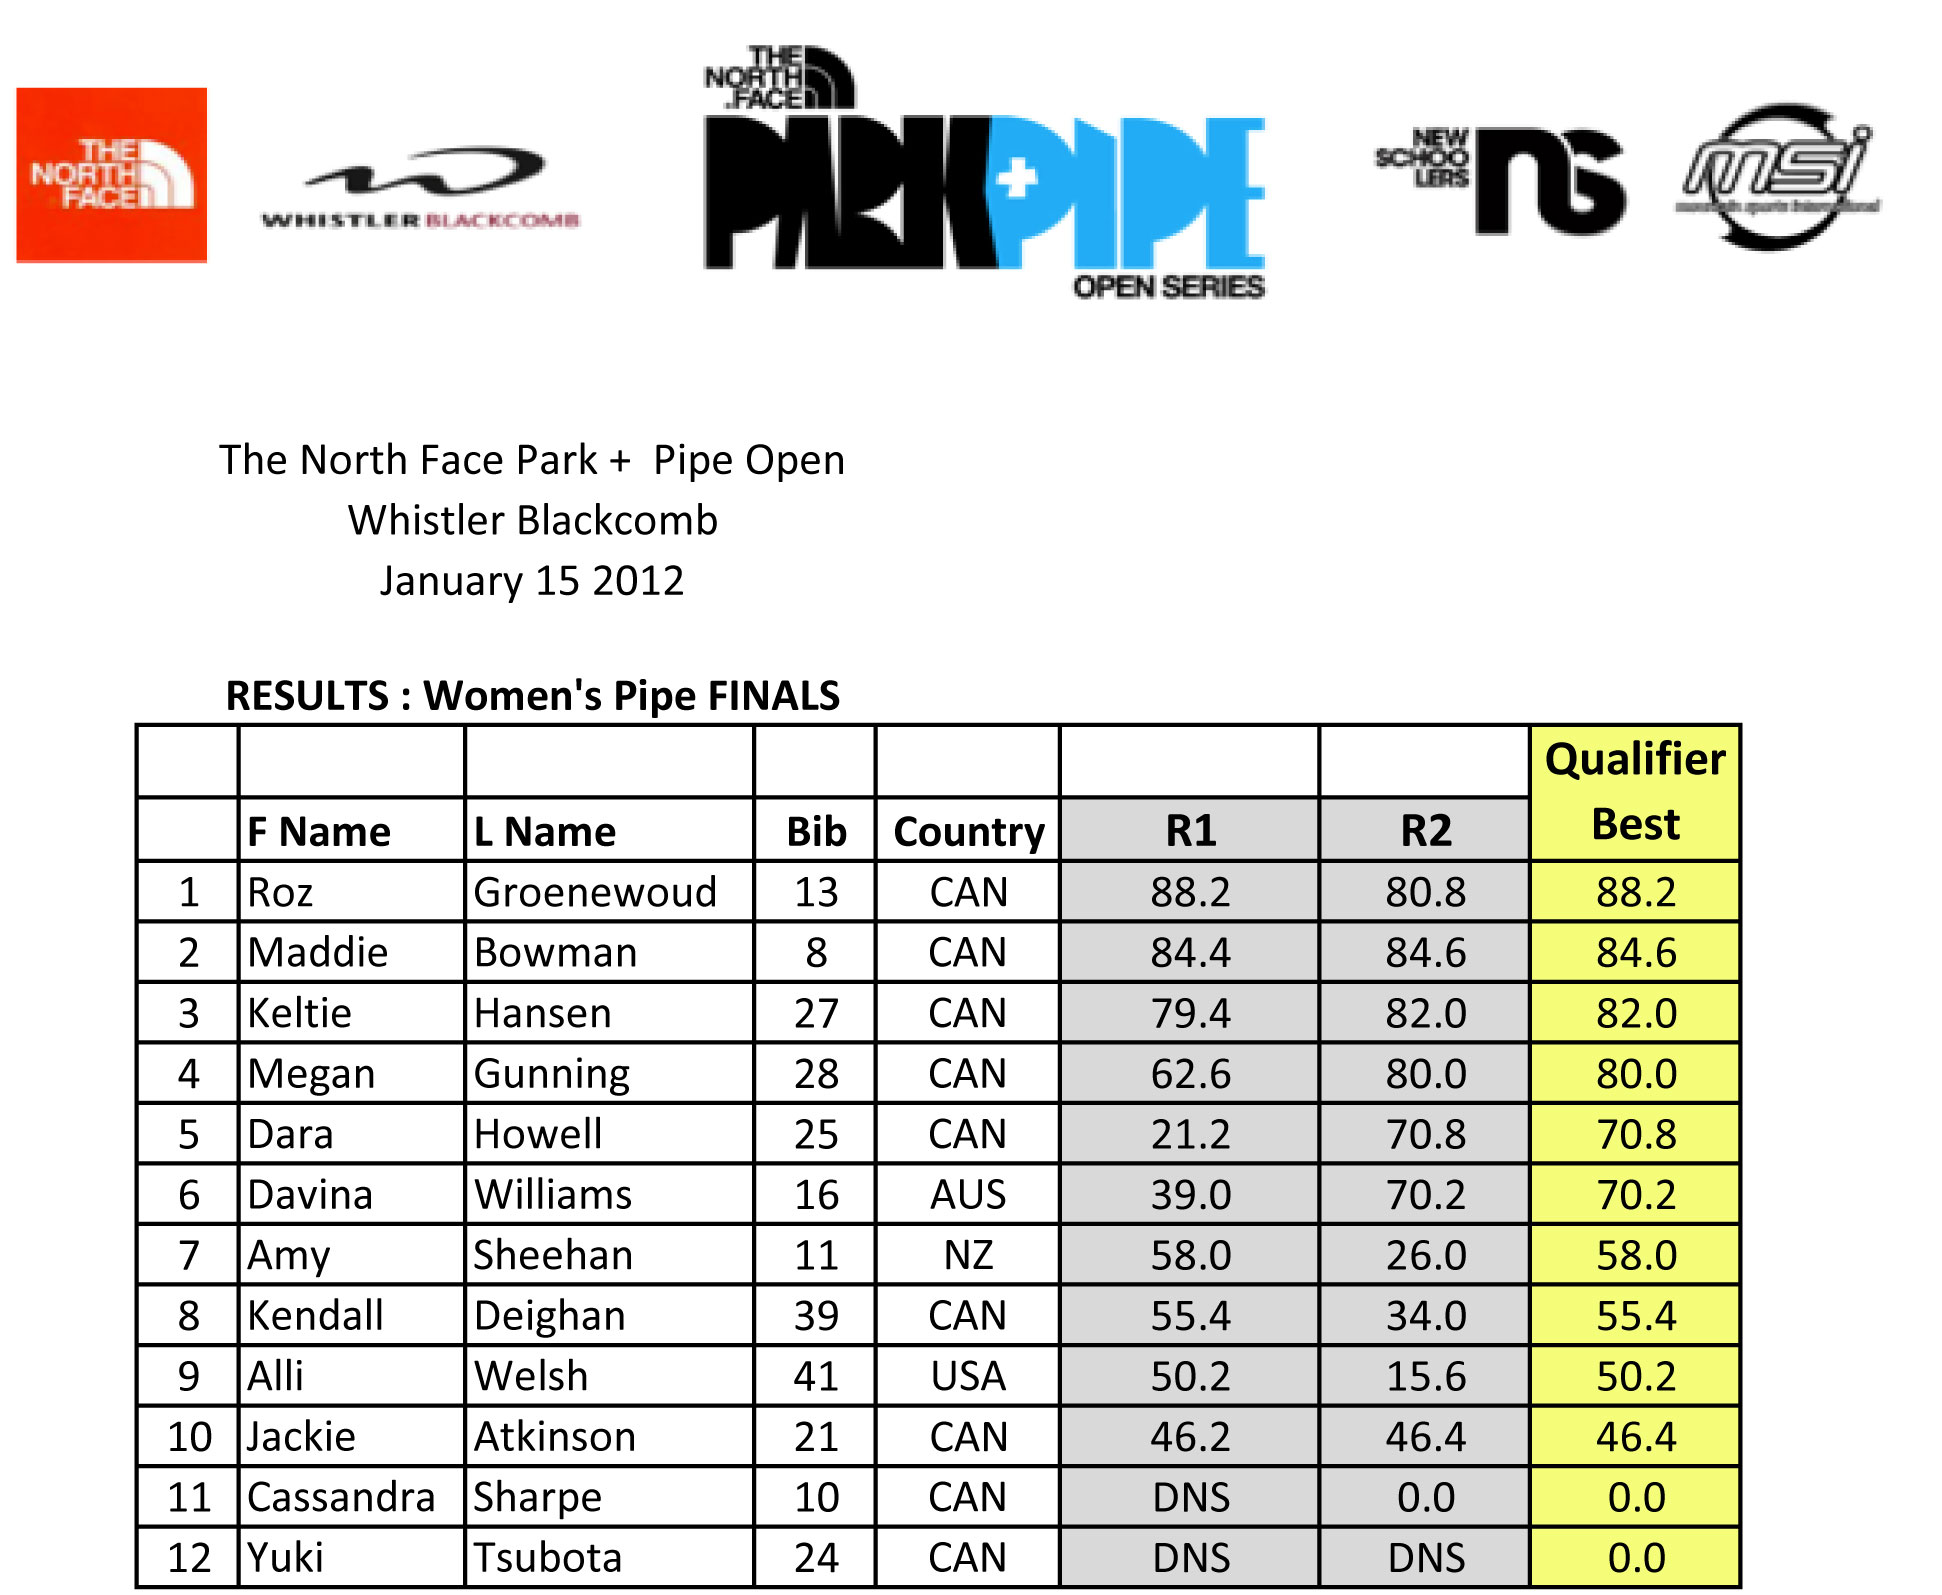 The North Face Park And Pipe Open Results